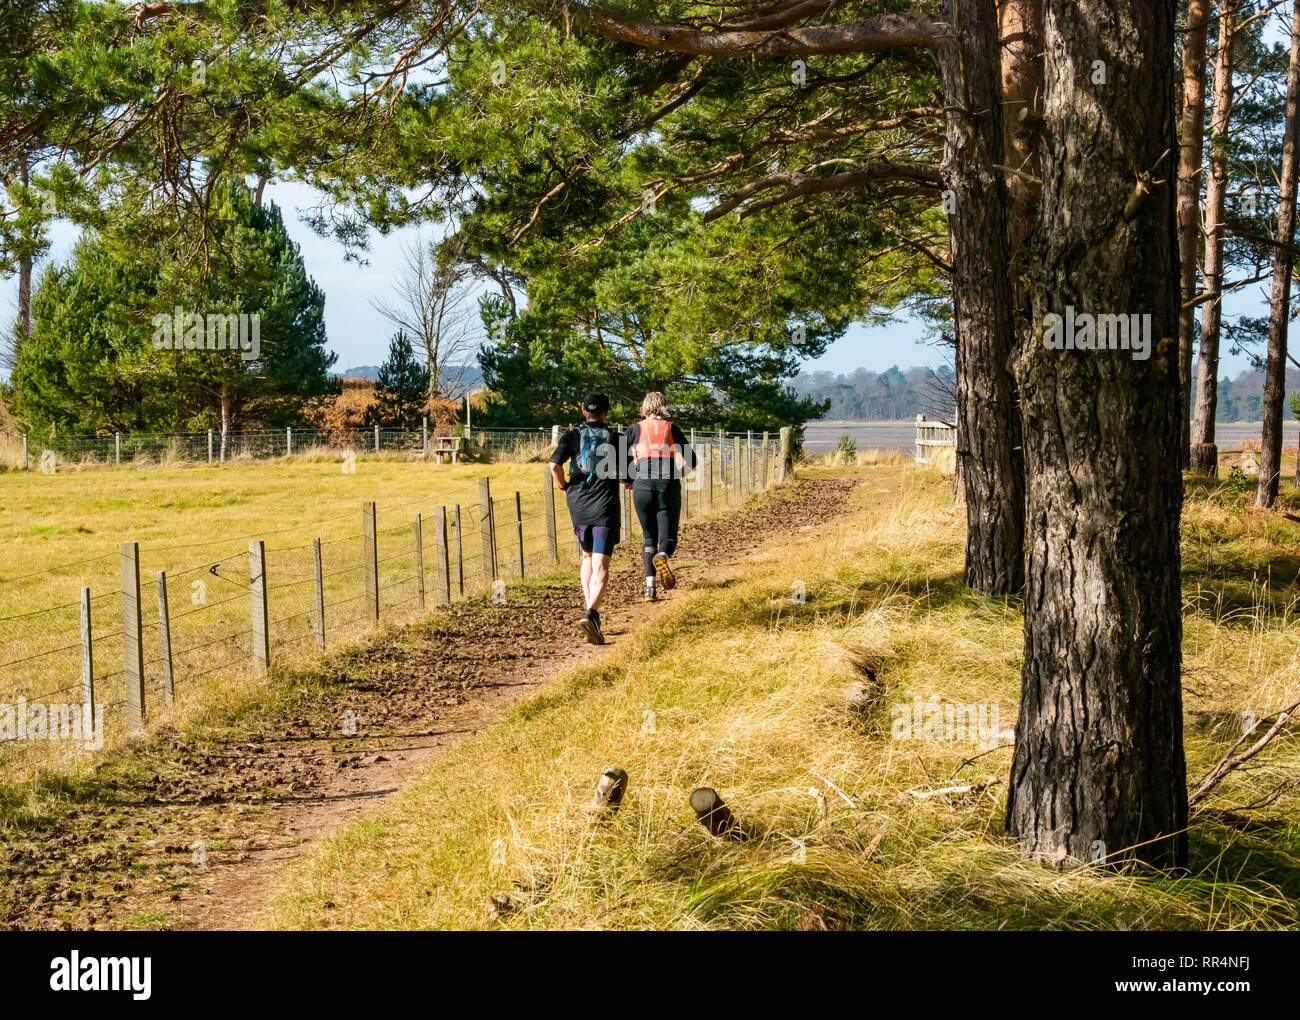 John Muir Country Park, Dunbar, East Lothian, Scotland, United Kingdom, 24th February 2019. People running on a Scots pine tree forest path next to a fenced field on an unusually warm sunny Winter day - Stock Image